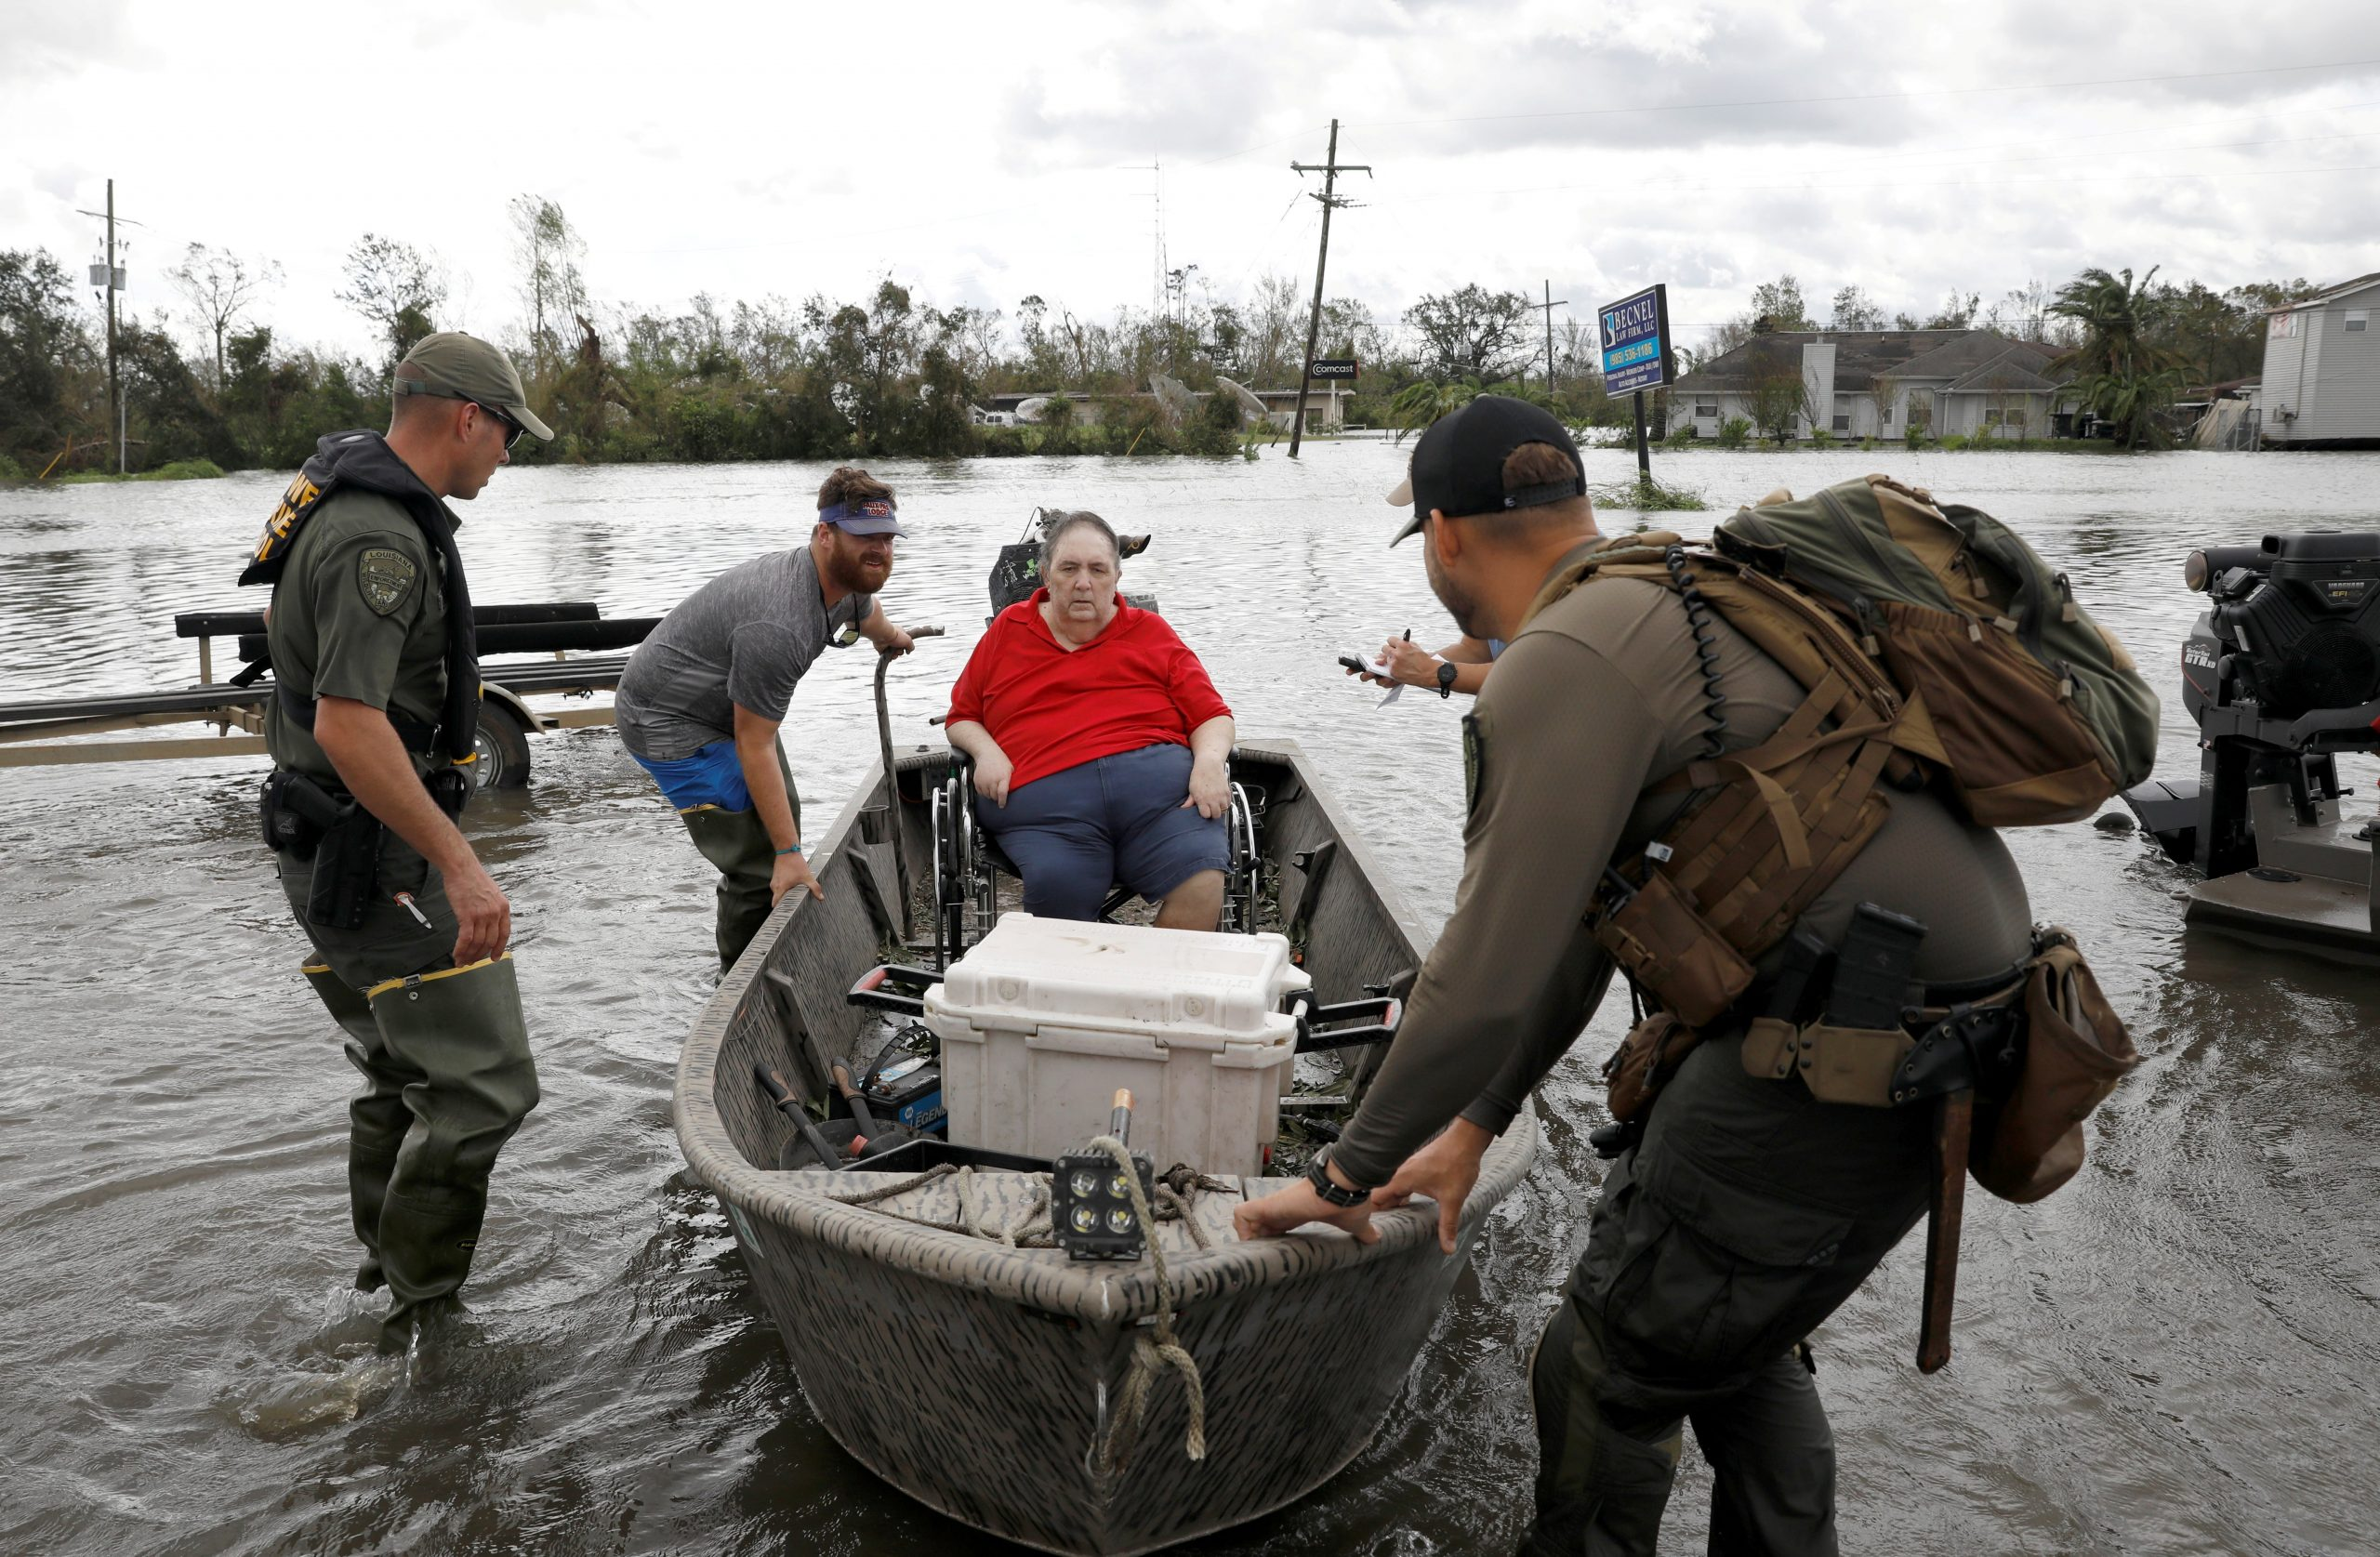 Members of a rescue team in Laplace, La., help evacuate people Aug. 30, 2021, after Hurricane Ida made landfall.